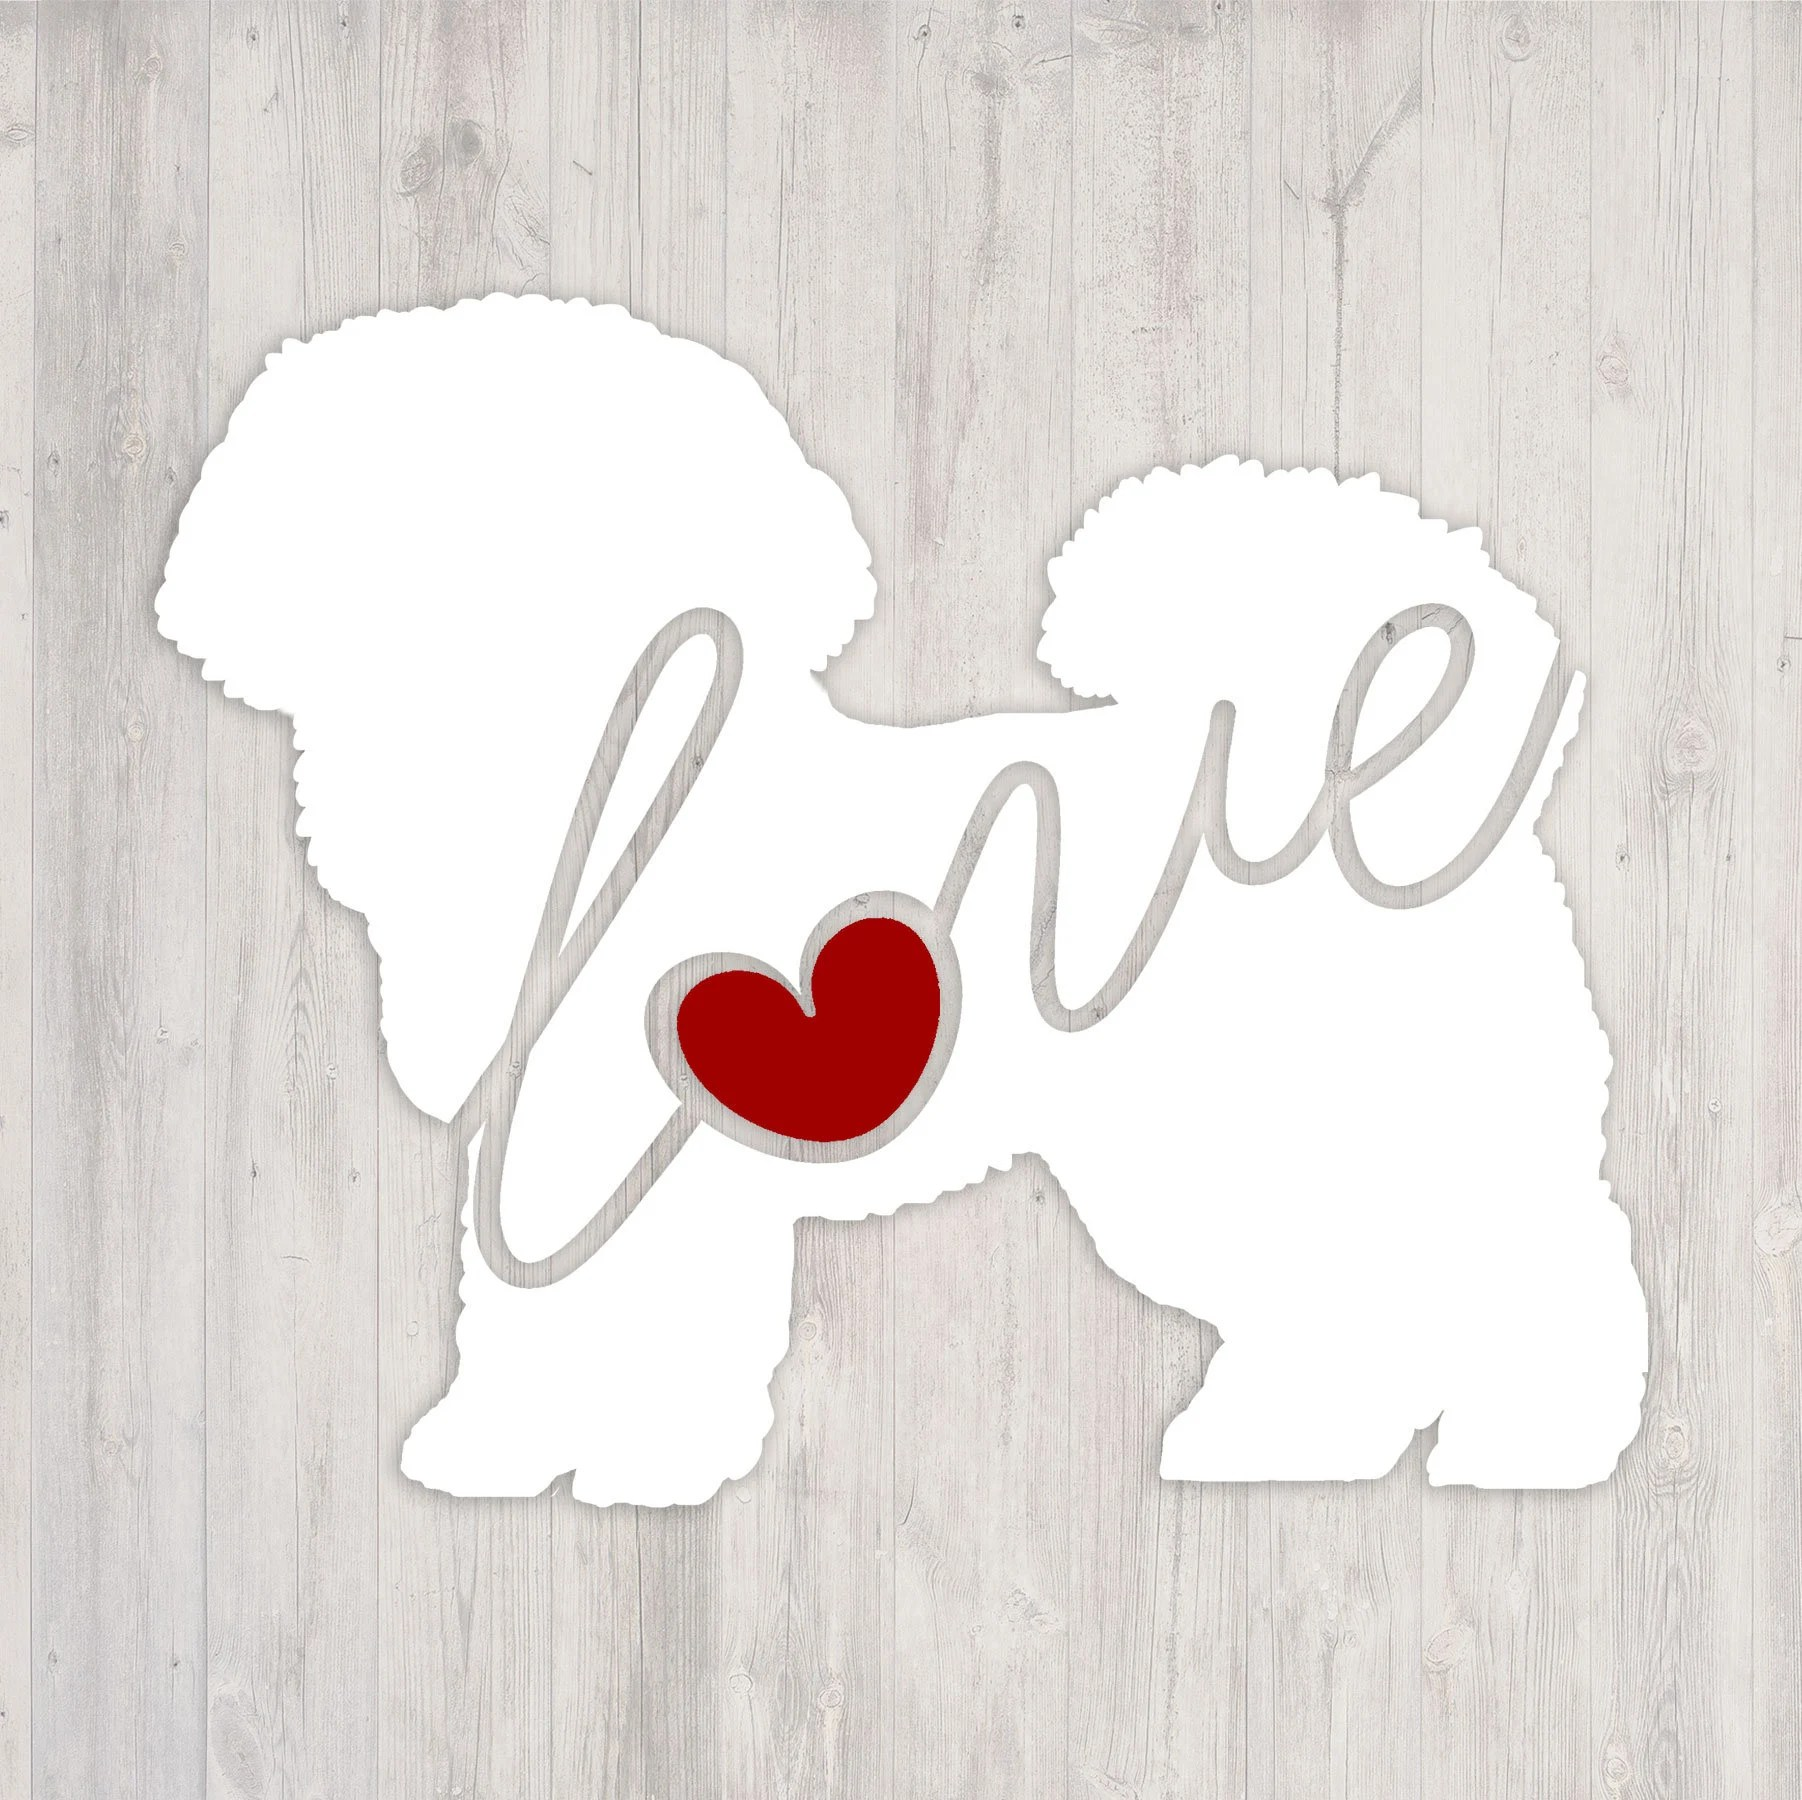 Frise Sticker Bichon Frise Love A Car Window Vinyl Decal Laptop Sticker Dog Breed Decals Dog Stickers Cooler Decal Gift For Dog Lover